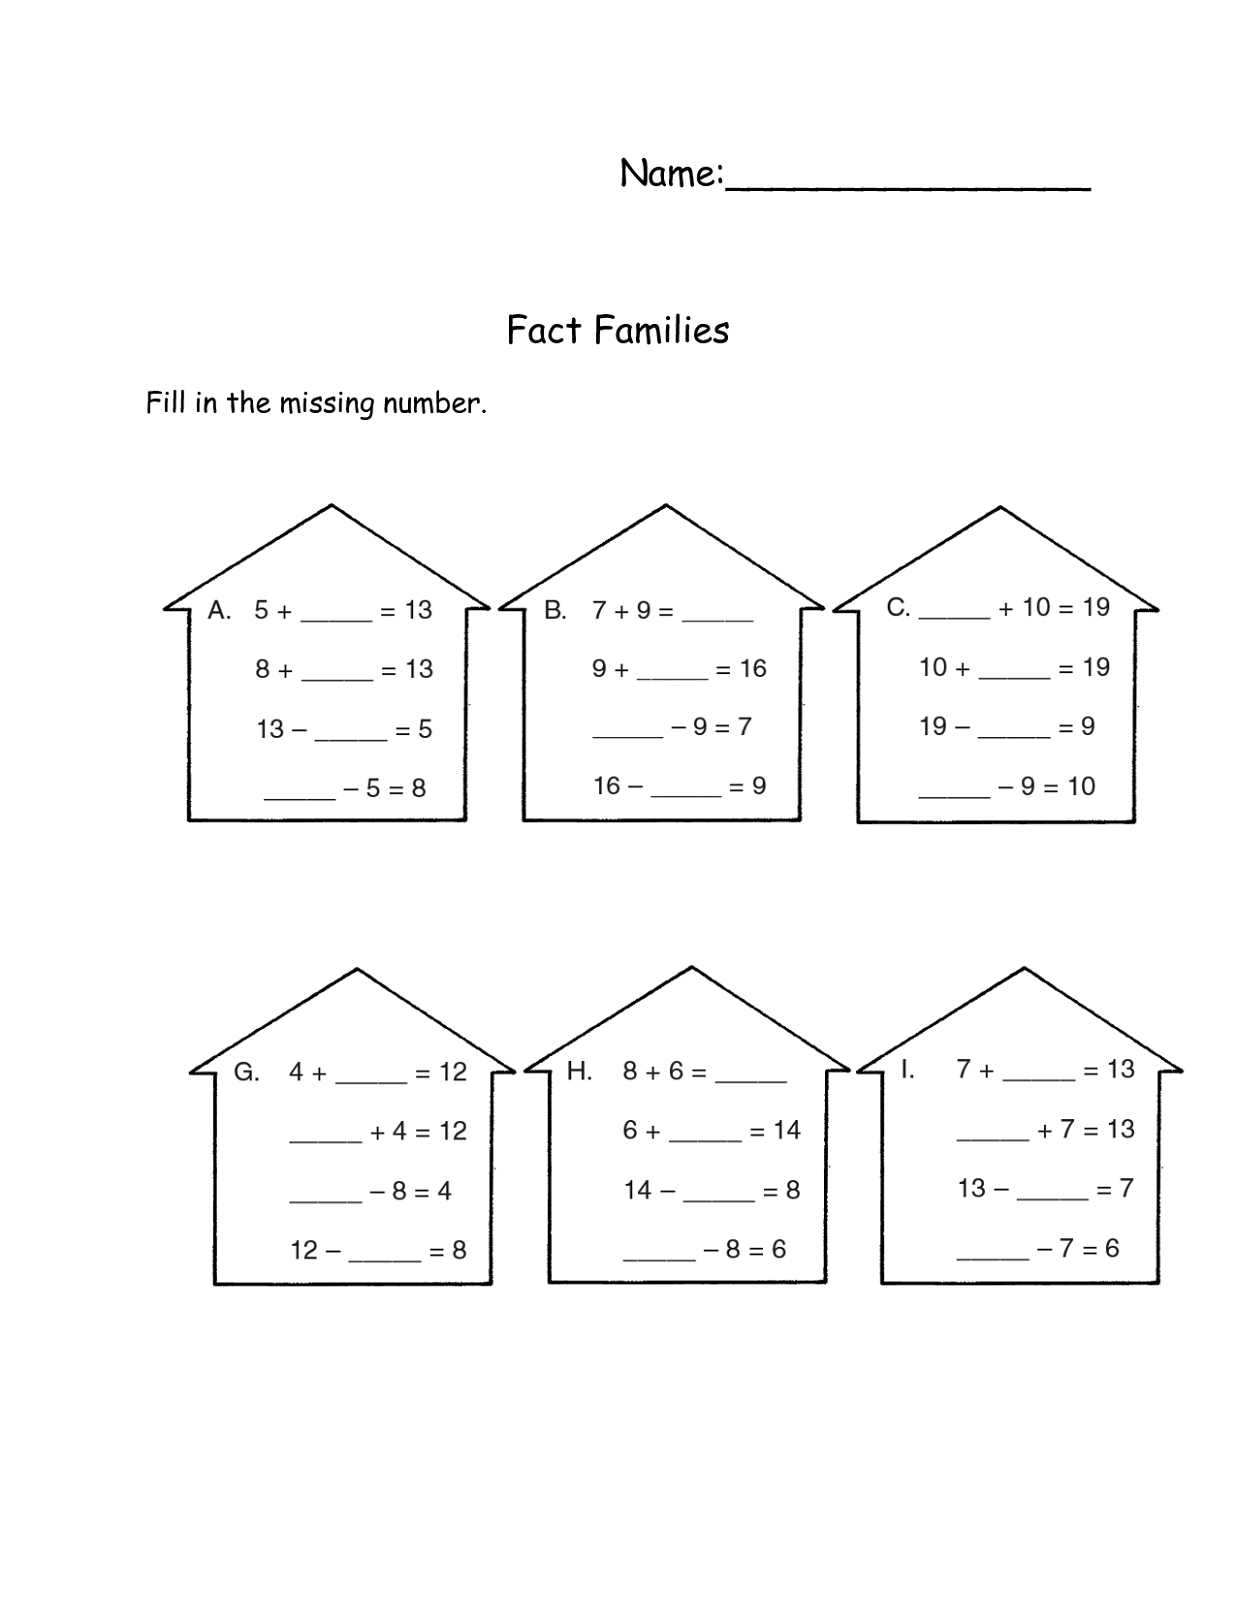 Blank Fact Family Worksheets